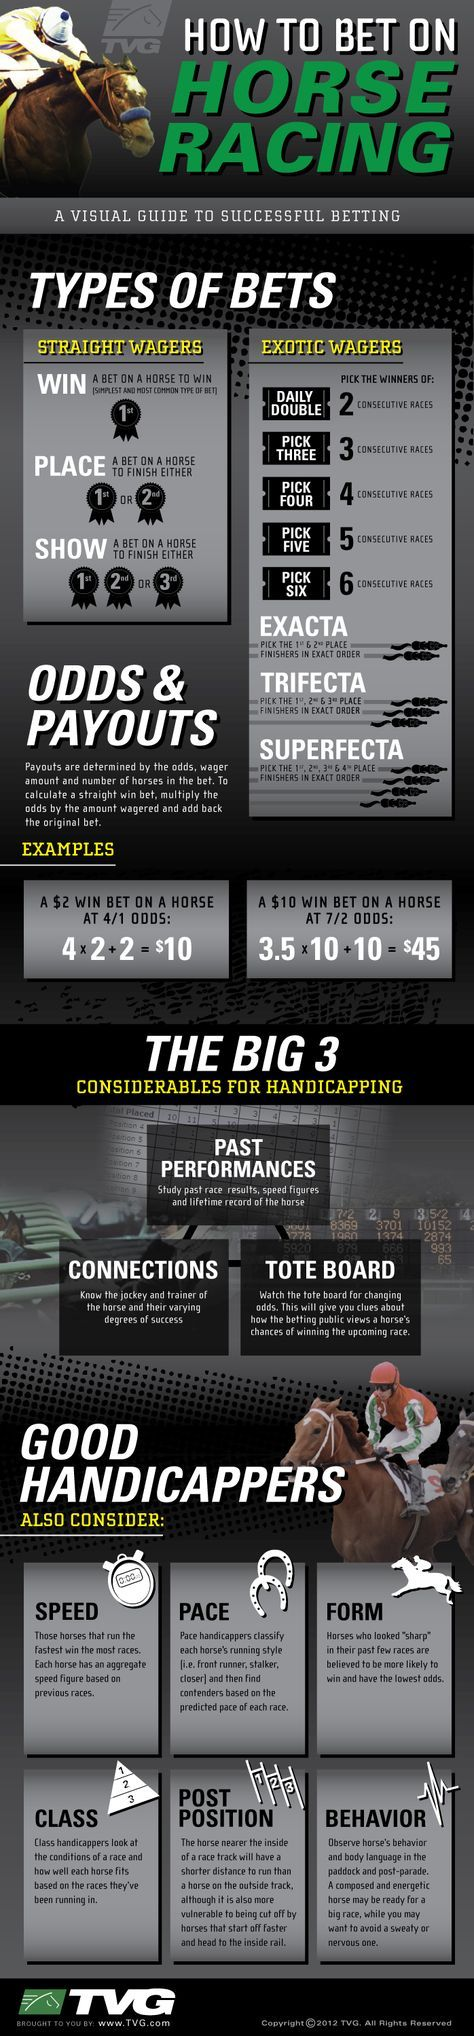 How To Bet On Horse Racing INFOGRAPHIC - How To Bet On Horse Racing [INFOGRAPHIC]